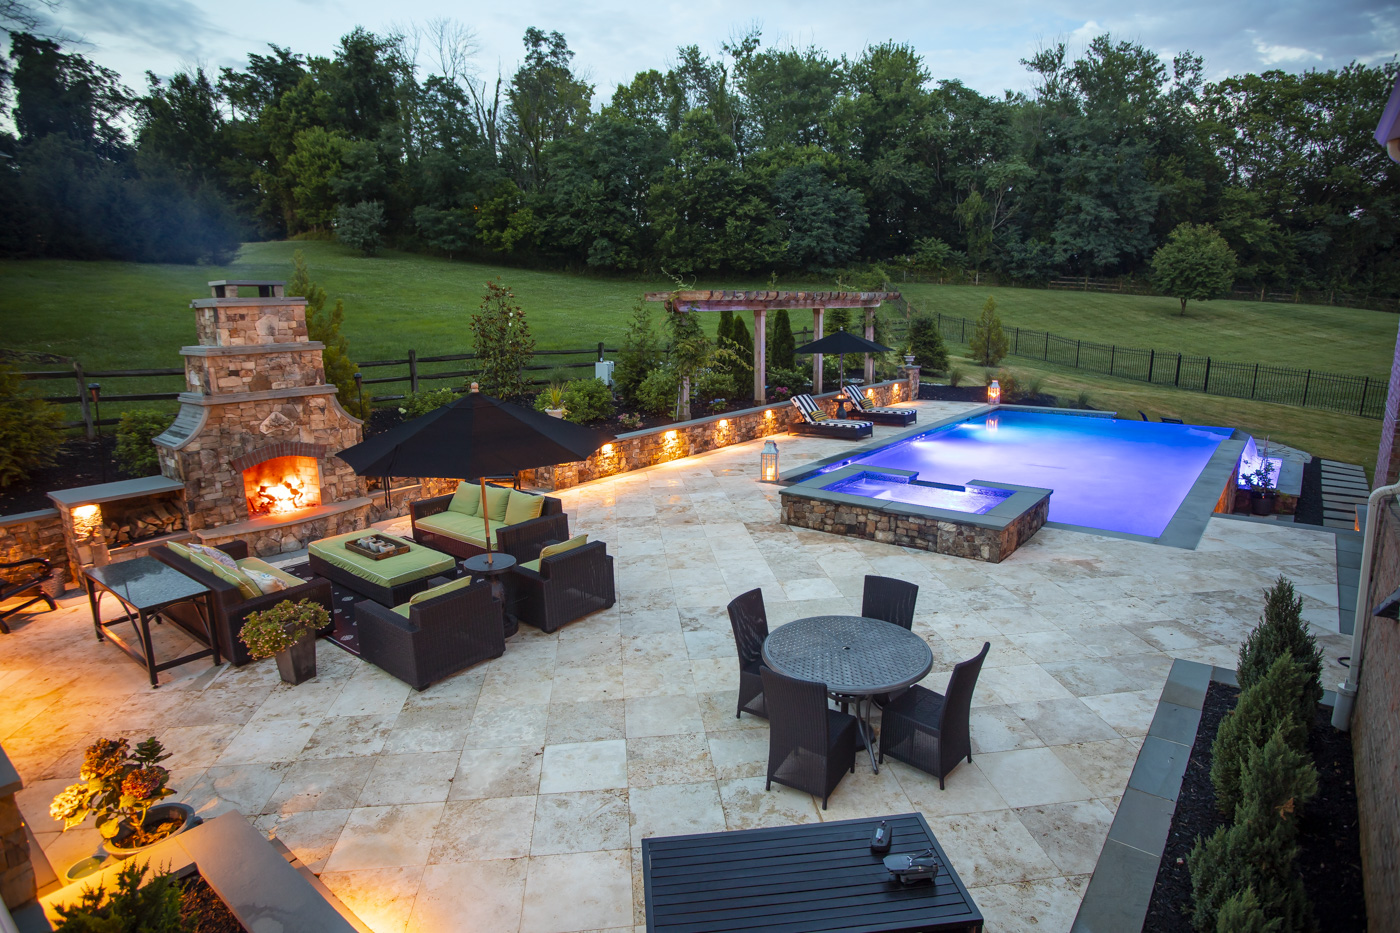 pool patio with natural stone, fire place, lighting, and hot tub